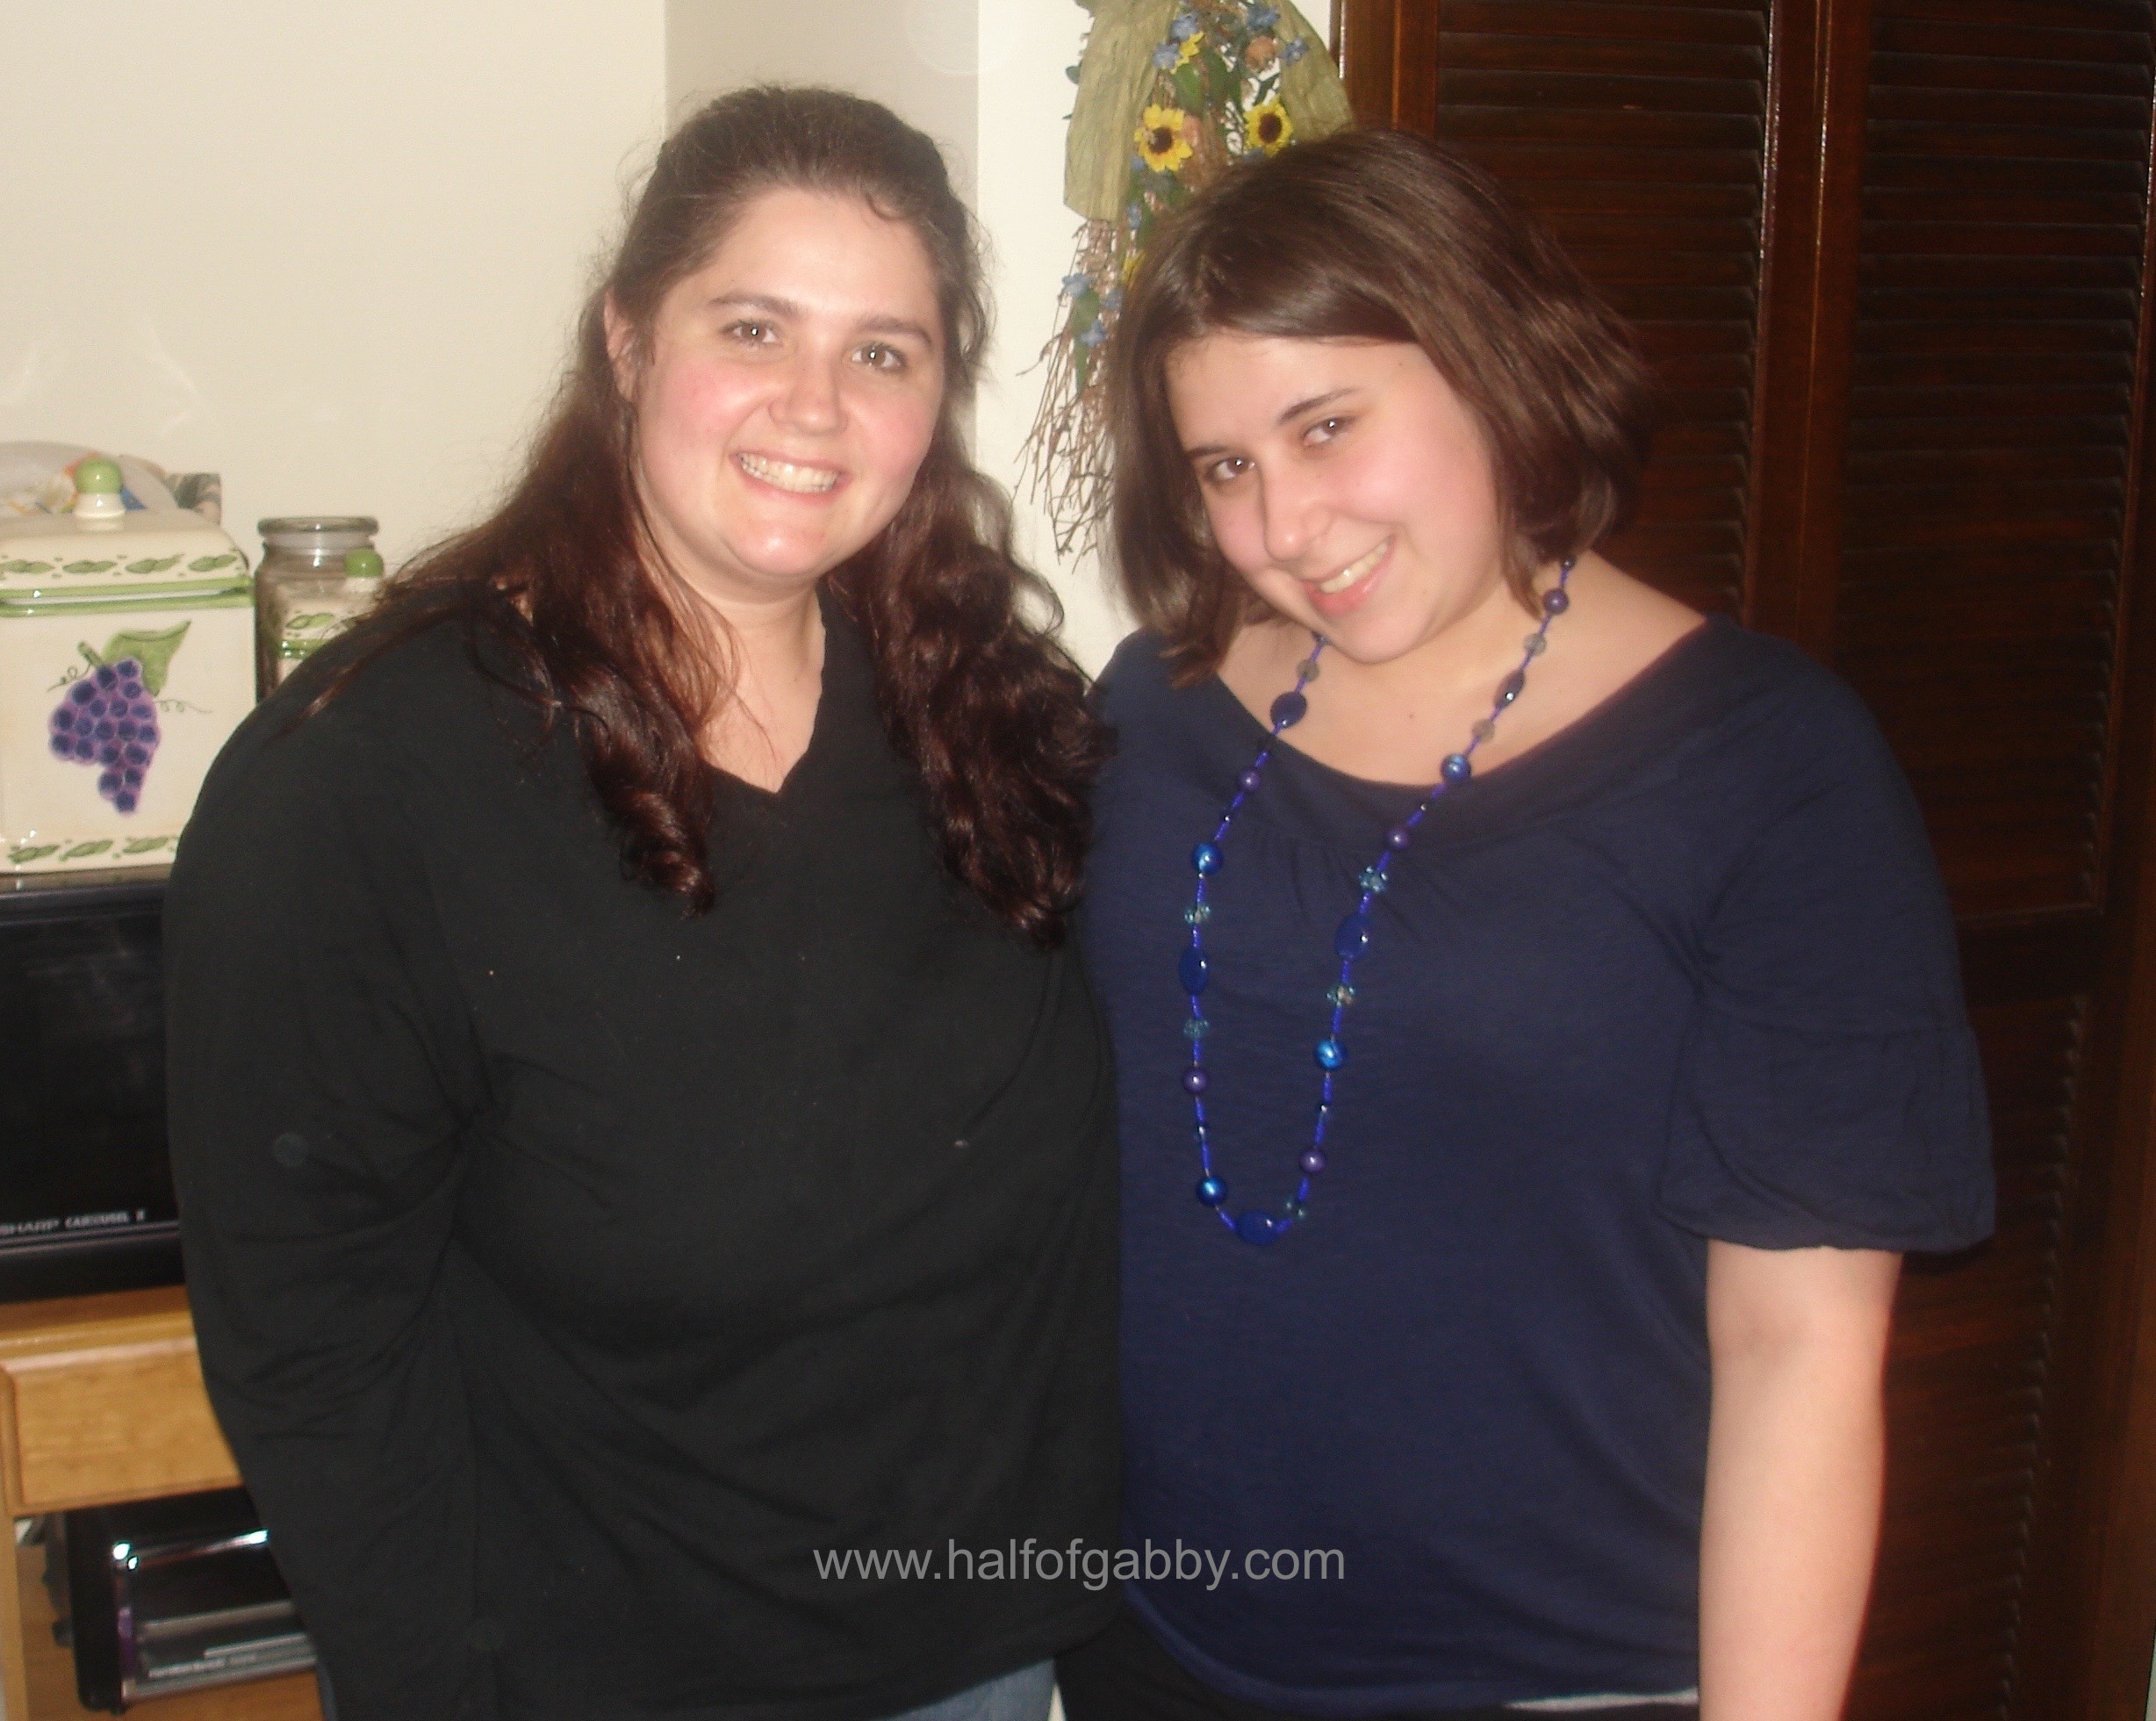 This is me with my little cousin. I was not yet at my top weight of 262 pounds. In this pic I weighed around 230 pounds.